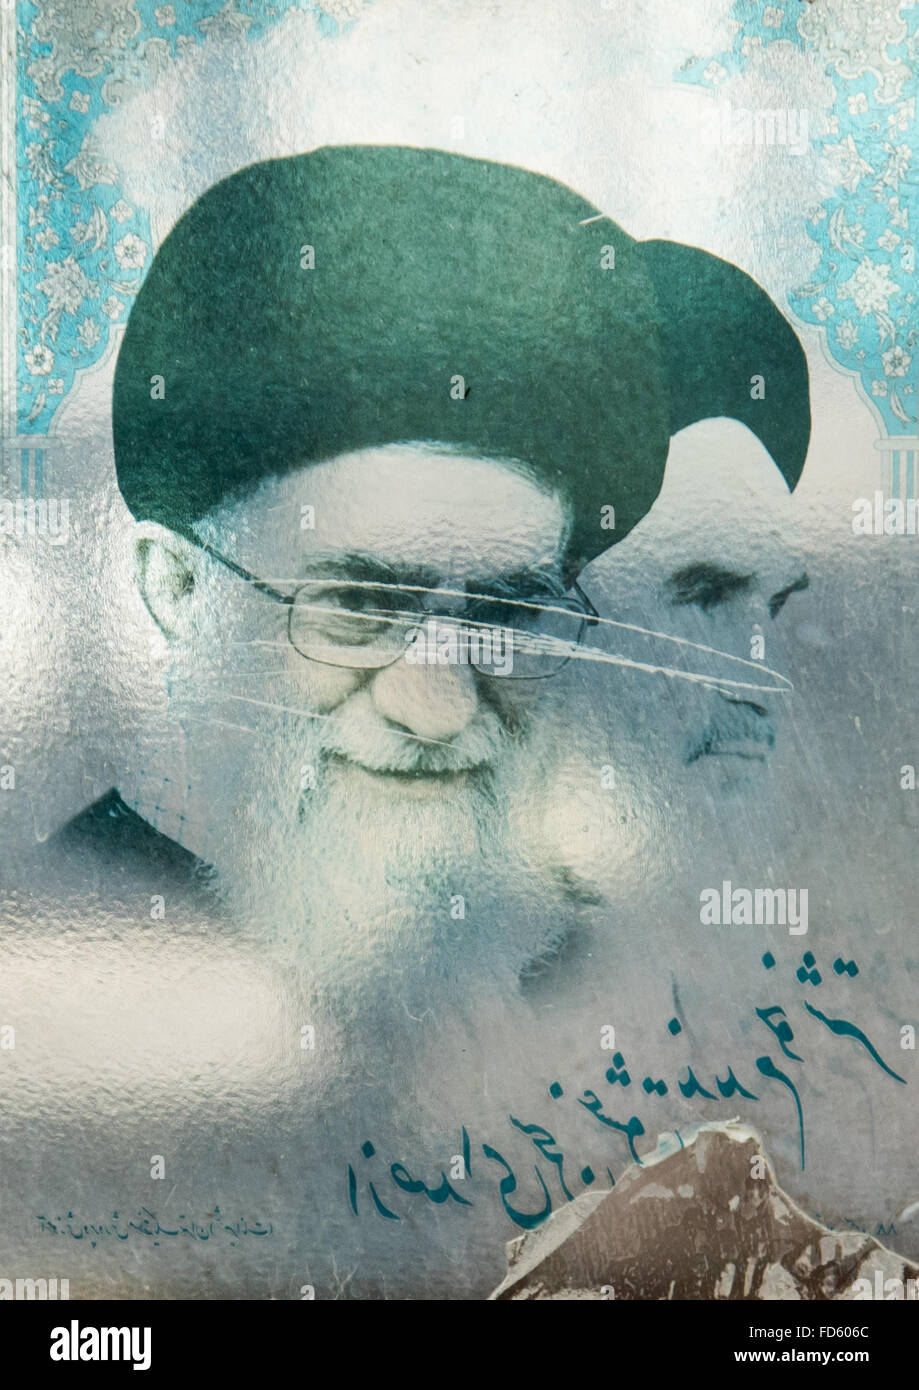 Non Muslim Perspective On The Revolution Of Imam Hussain: Portrait Of Ayatollah Khomeini Stock Photos & Portrait Of